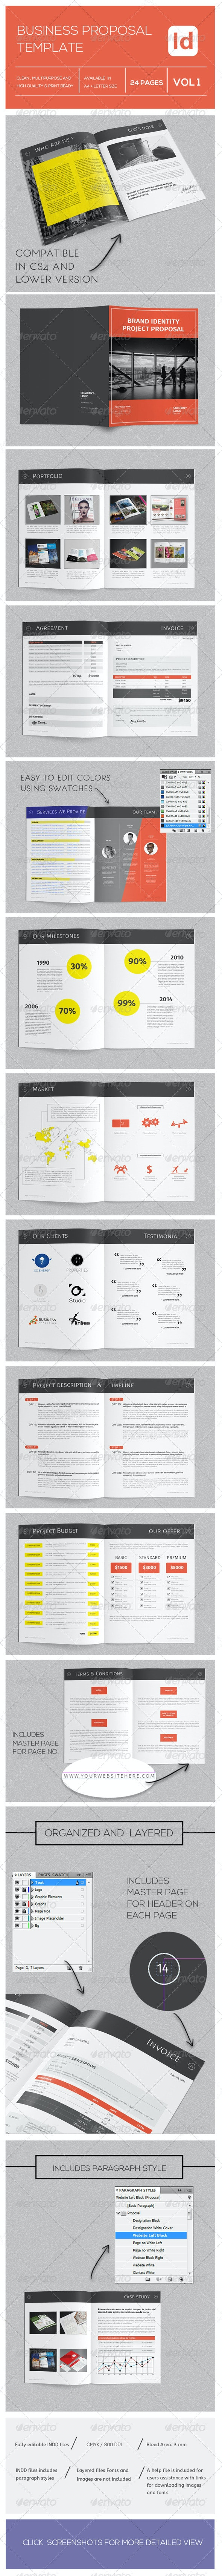 Business Project Proposal Template - Proposals & Invoices Stationery